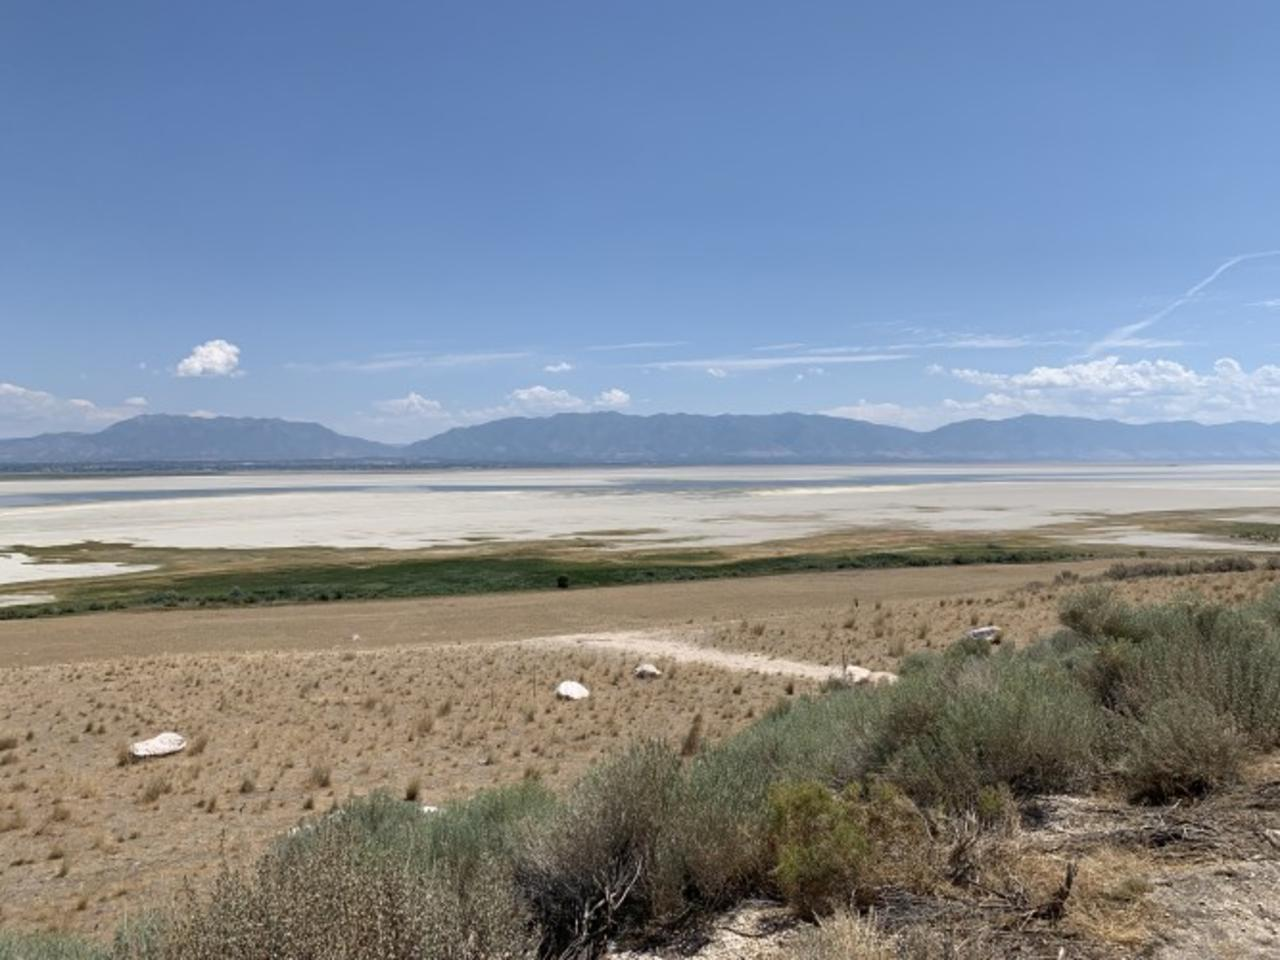 As Great Salt Lake shrinks, northern Utah's air pollution problems could worsen